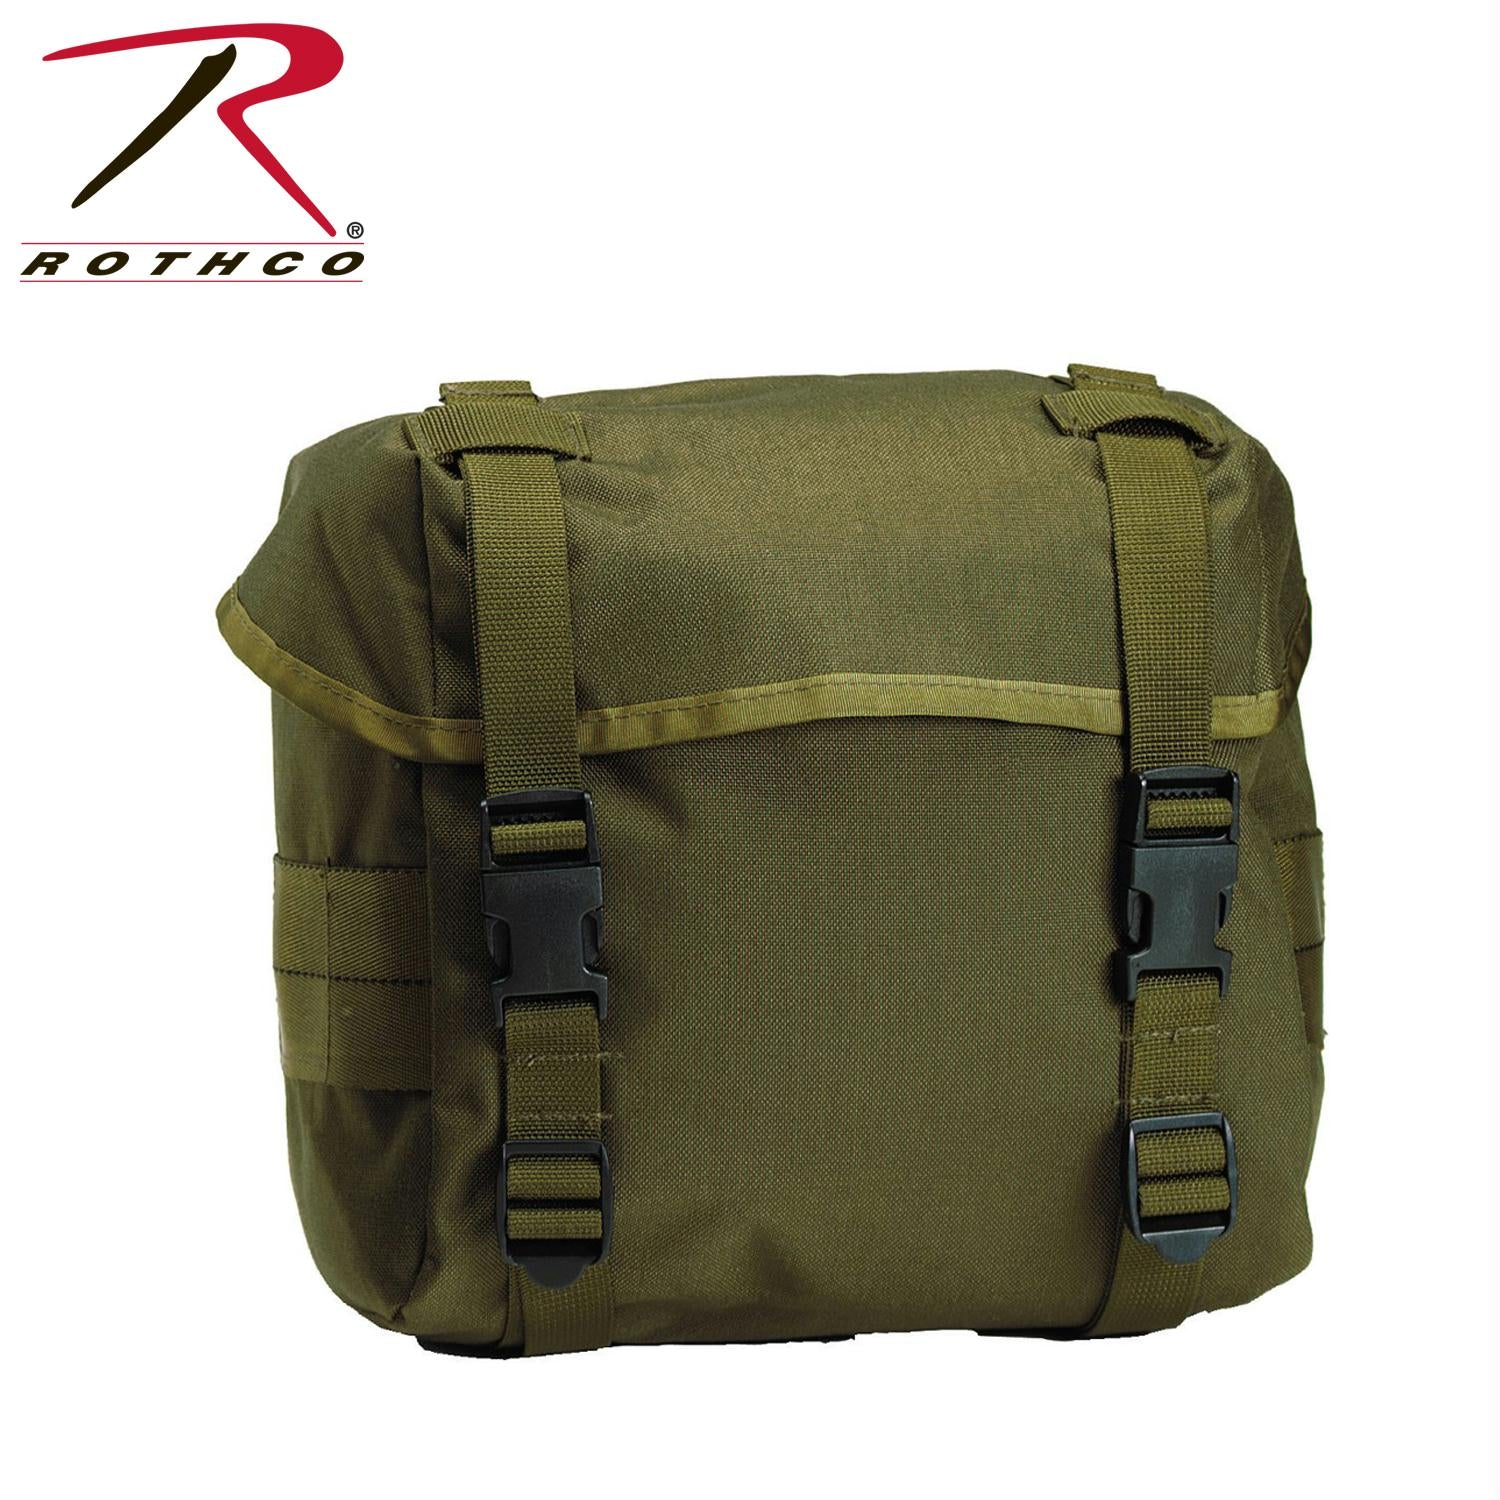 Rothco G.I. Type Enhanced Butt Packs - Olive Drab